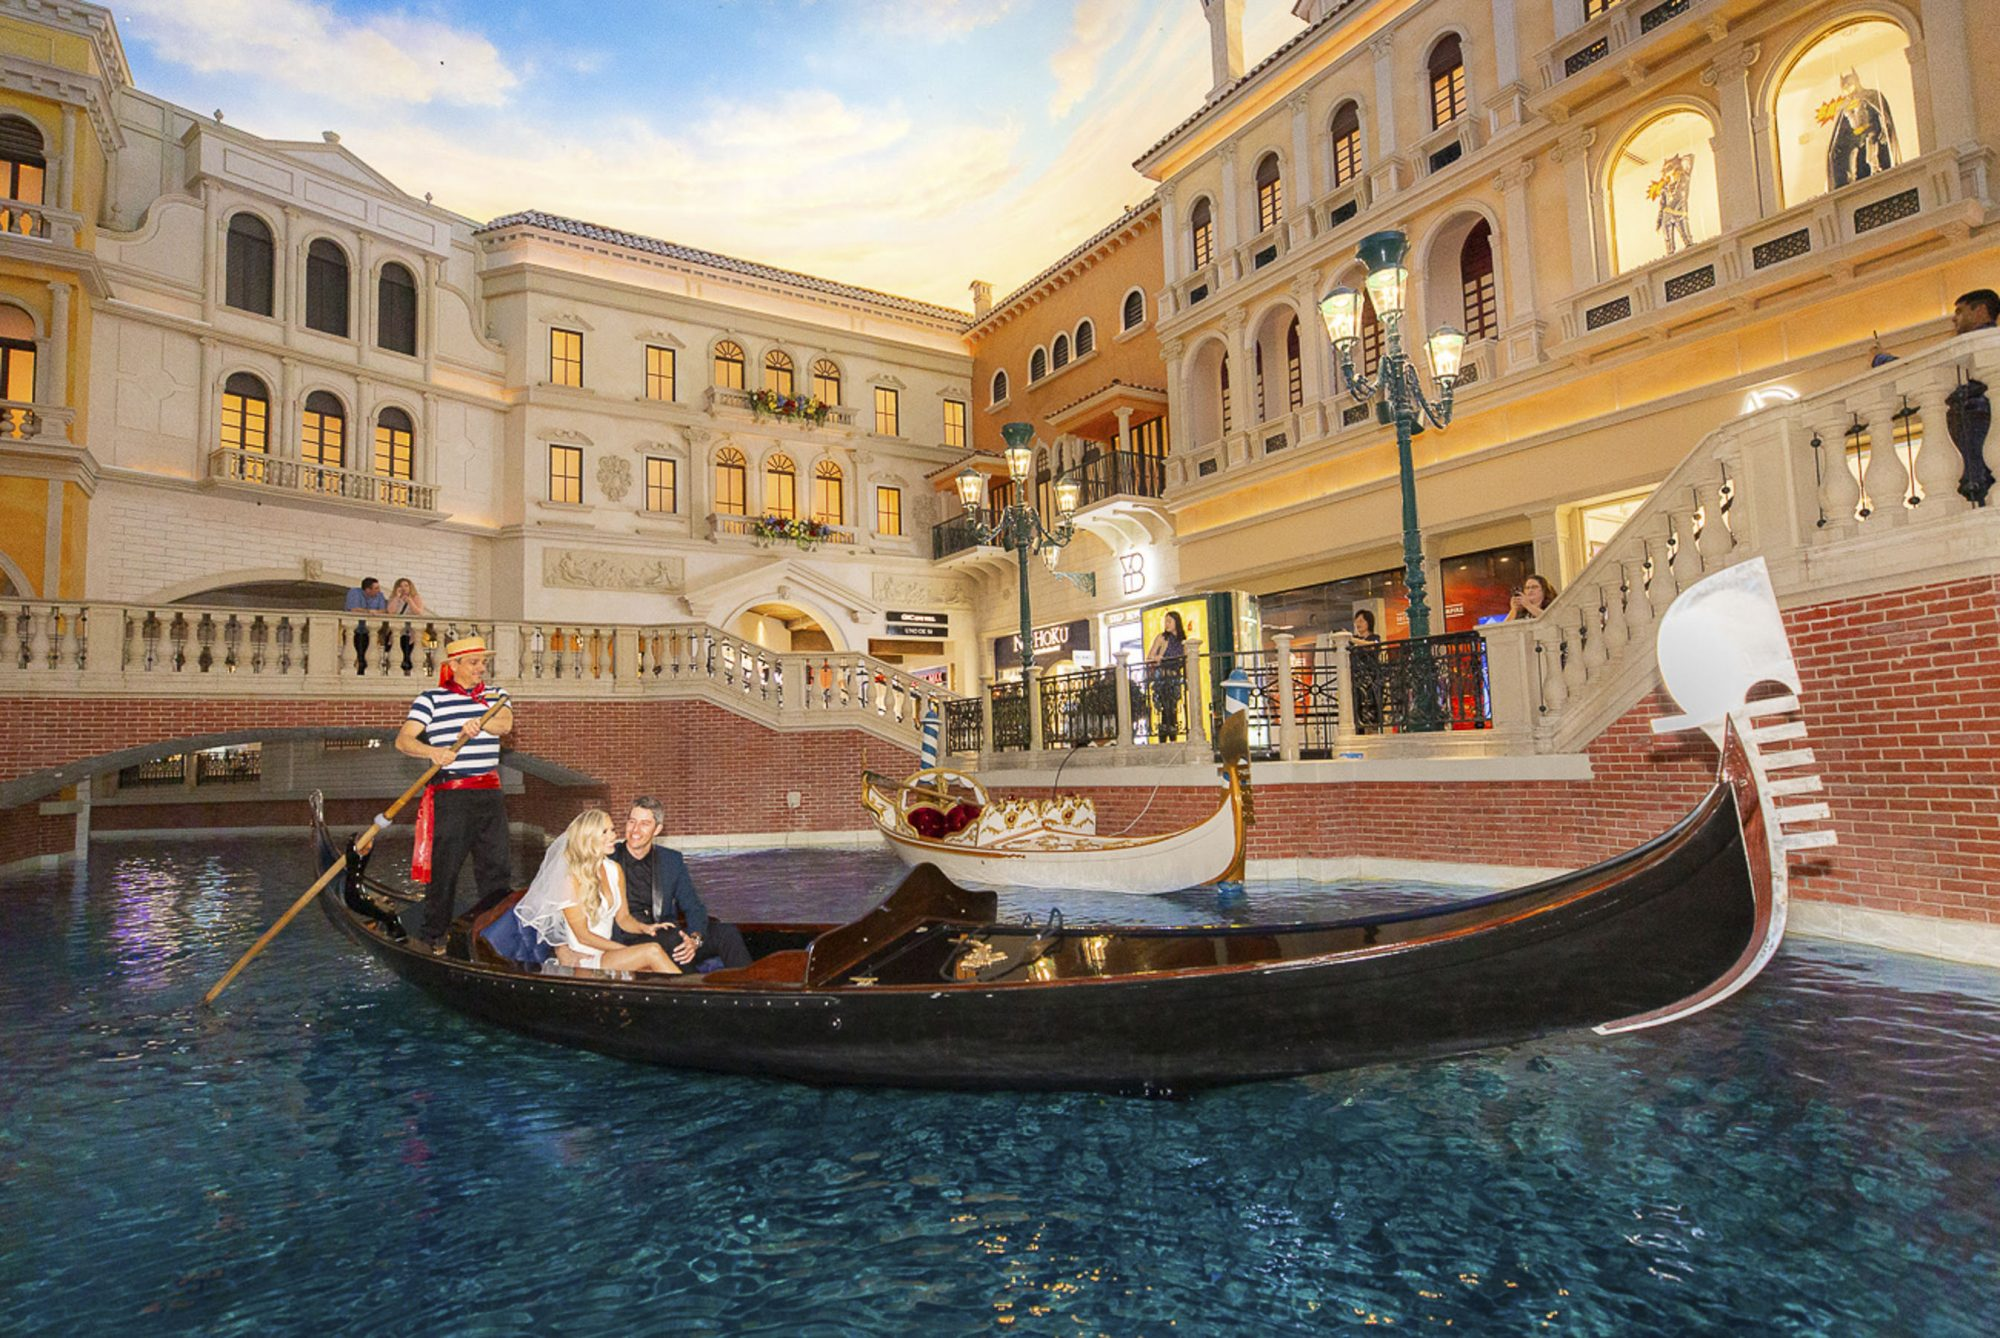 Arie Luyendyk Jr and Lauren Burnham take a romantic ride down the Grand Canal at The Venetian Resort Las Vegas